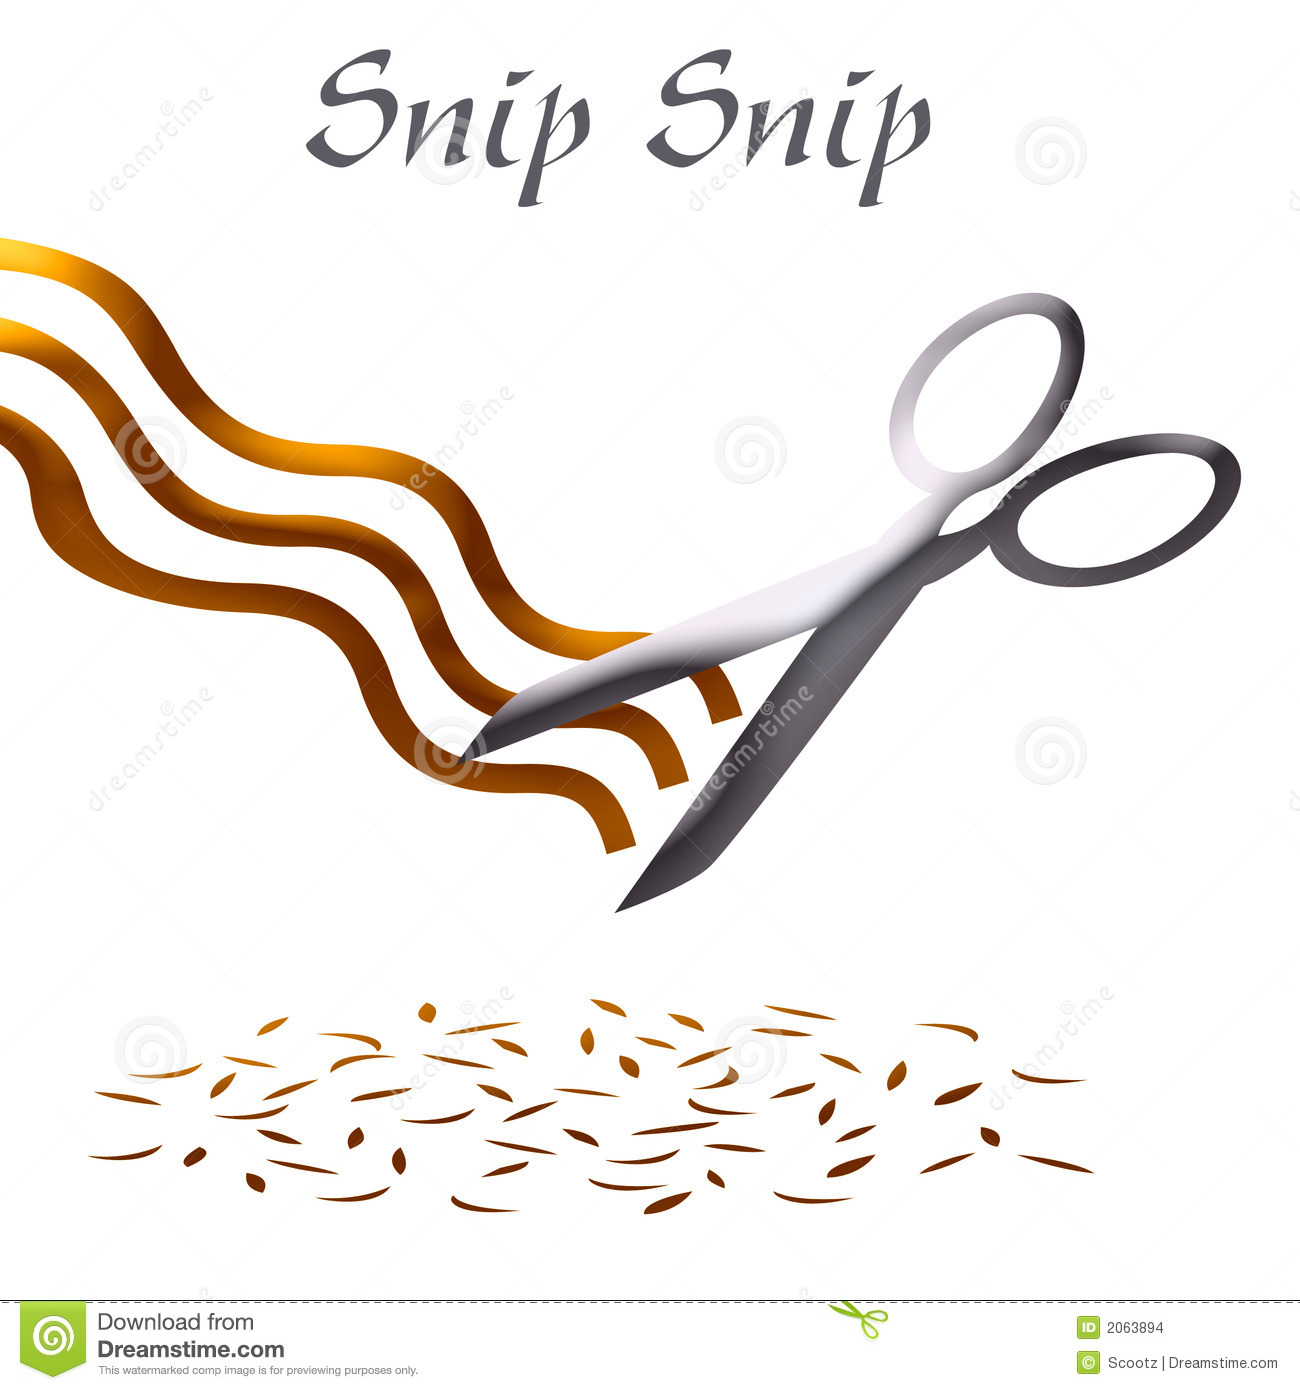 Haircut Clip Art Royalty Free Stock Image.